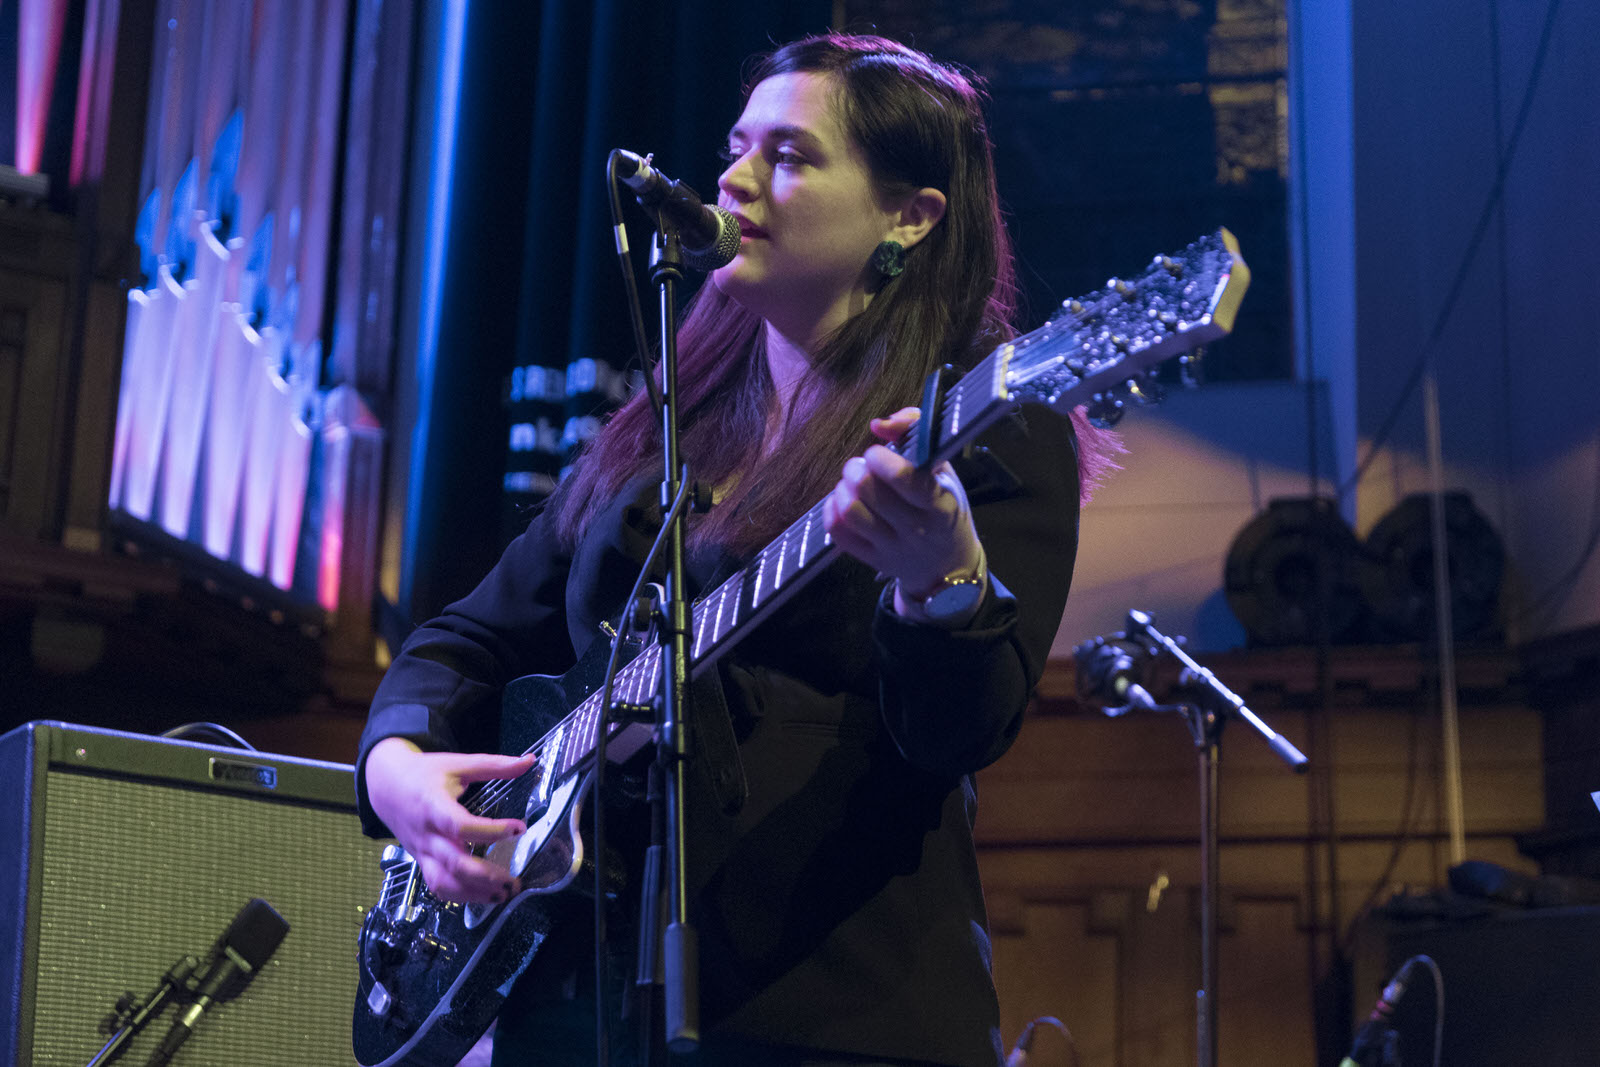 Photo of Siobhan Wilson on stage at Saint Luke's on 3 February 2019